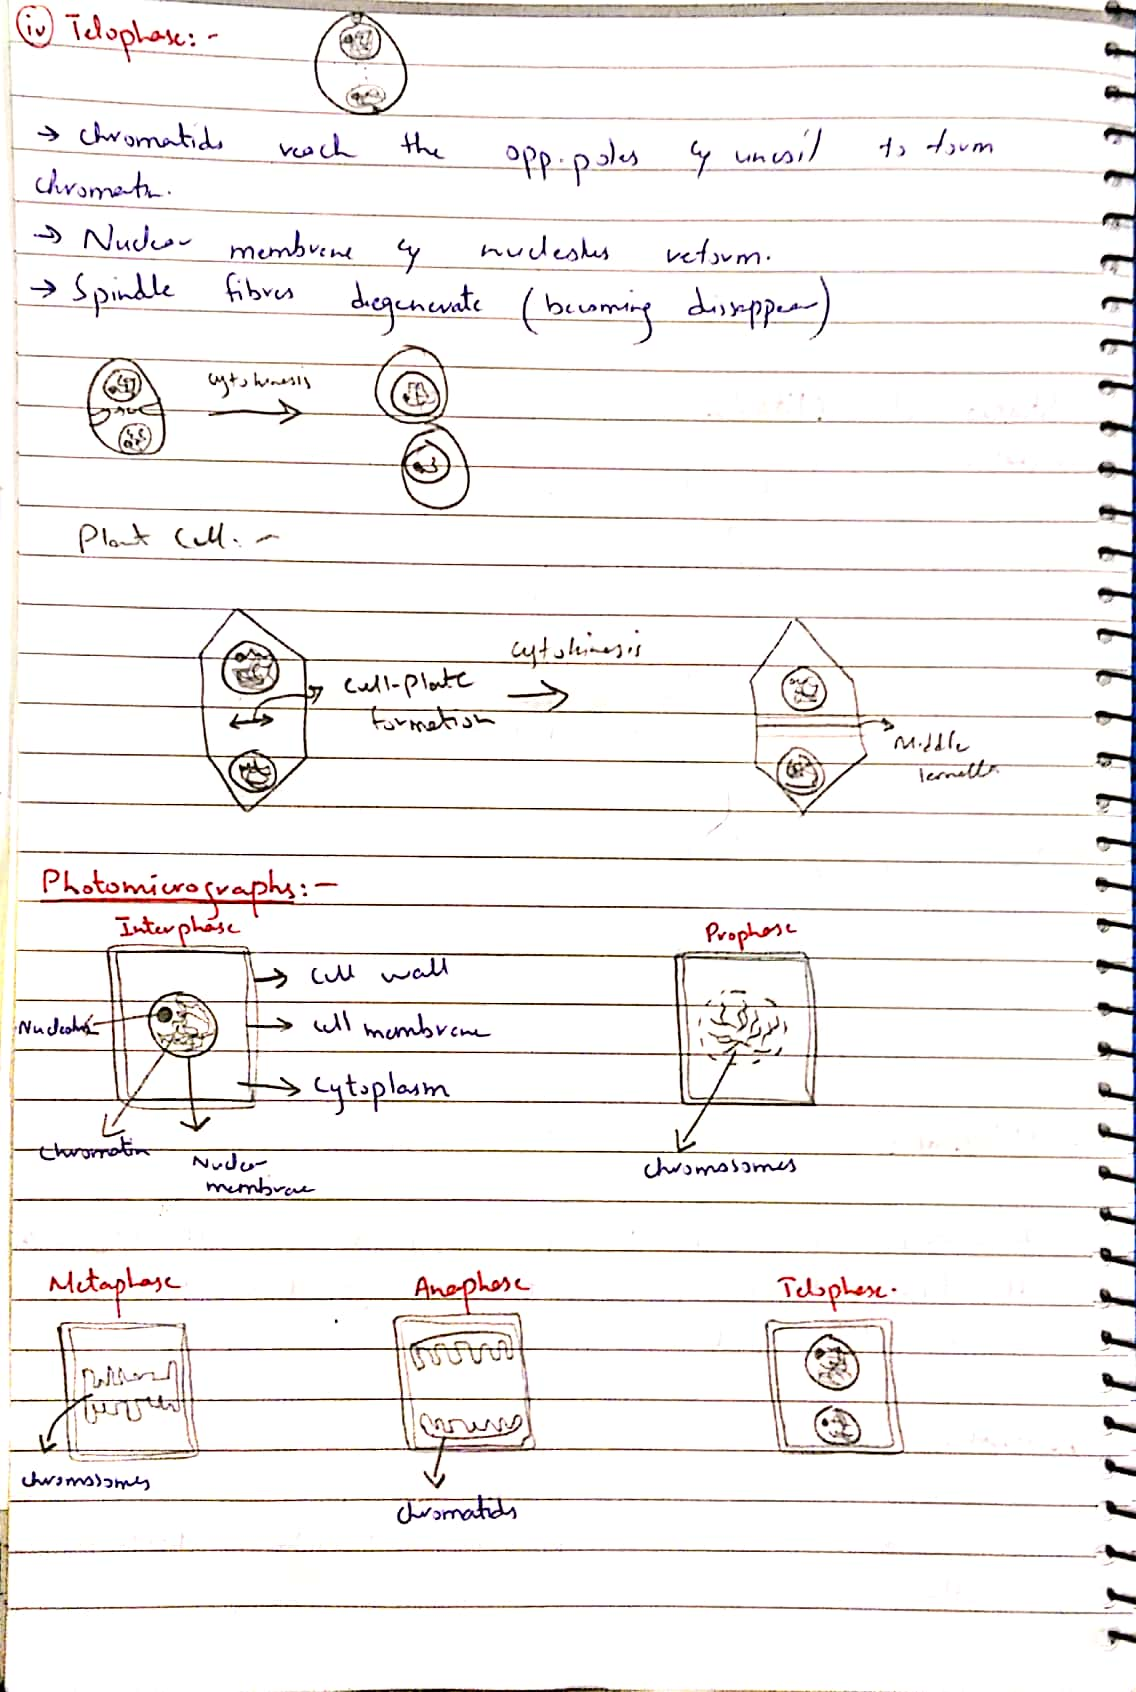 mitotic cycle._6